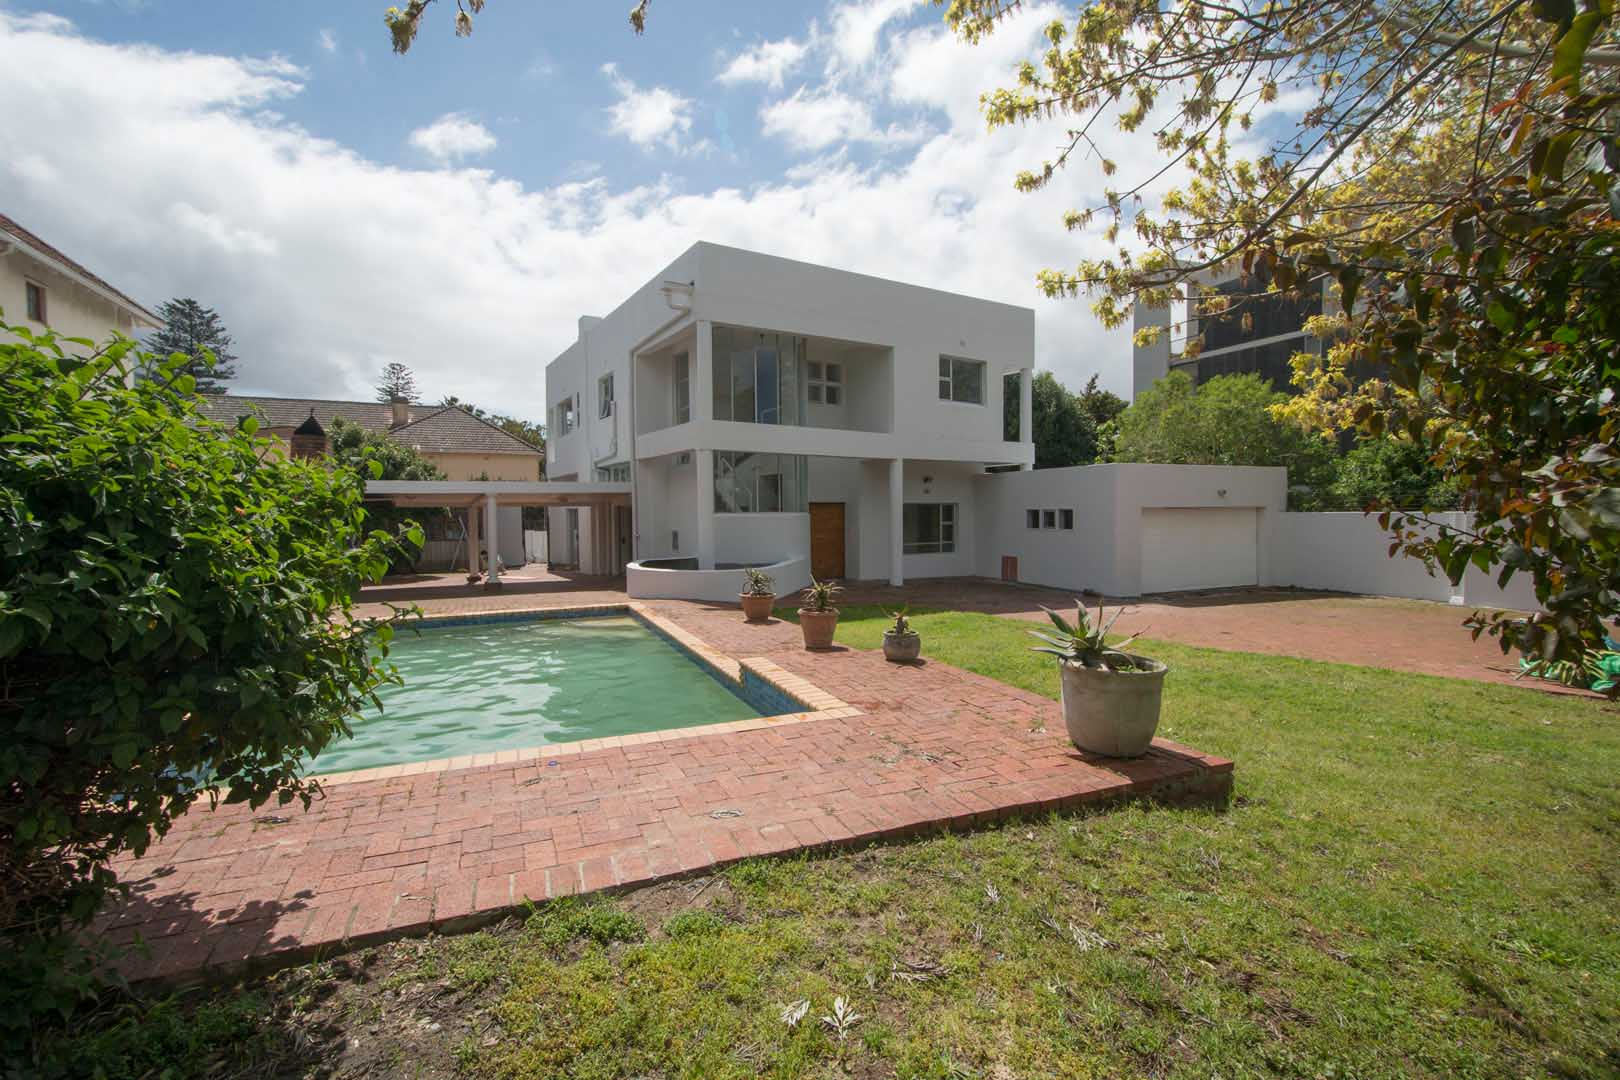 A Stunning Home in Excellent Condition